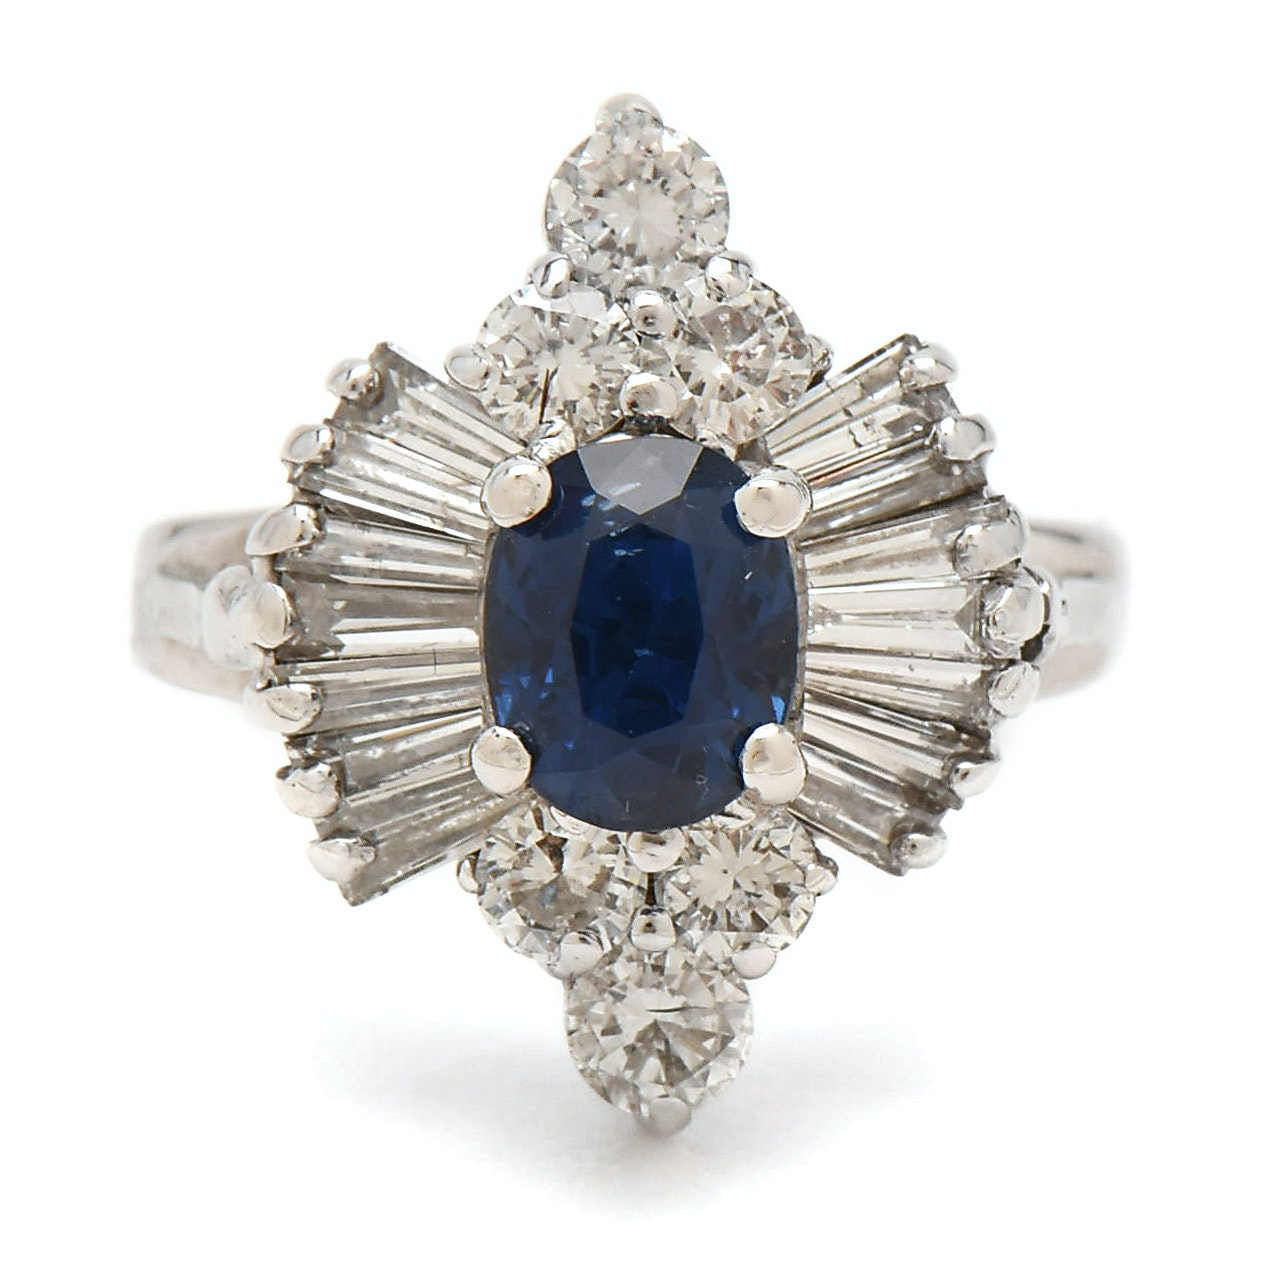 14K White Gold 1.20 CT Unheated Sapphire and Diamond Ring with AGL Report